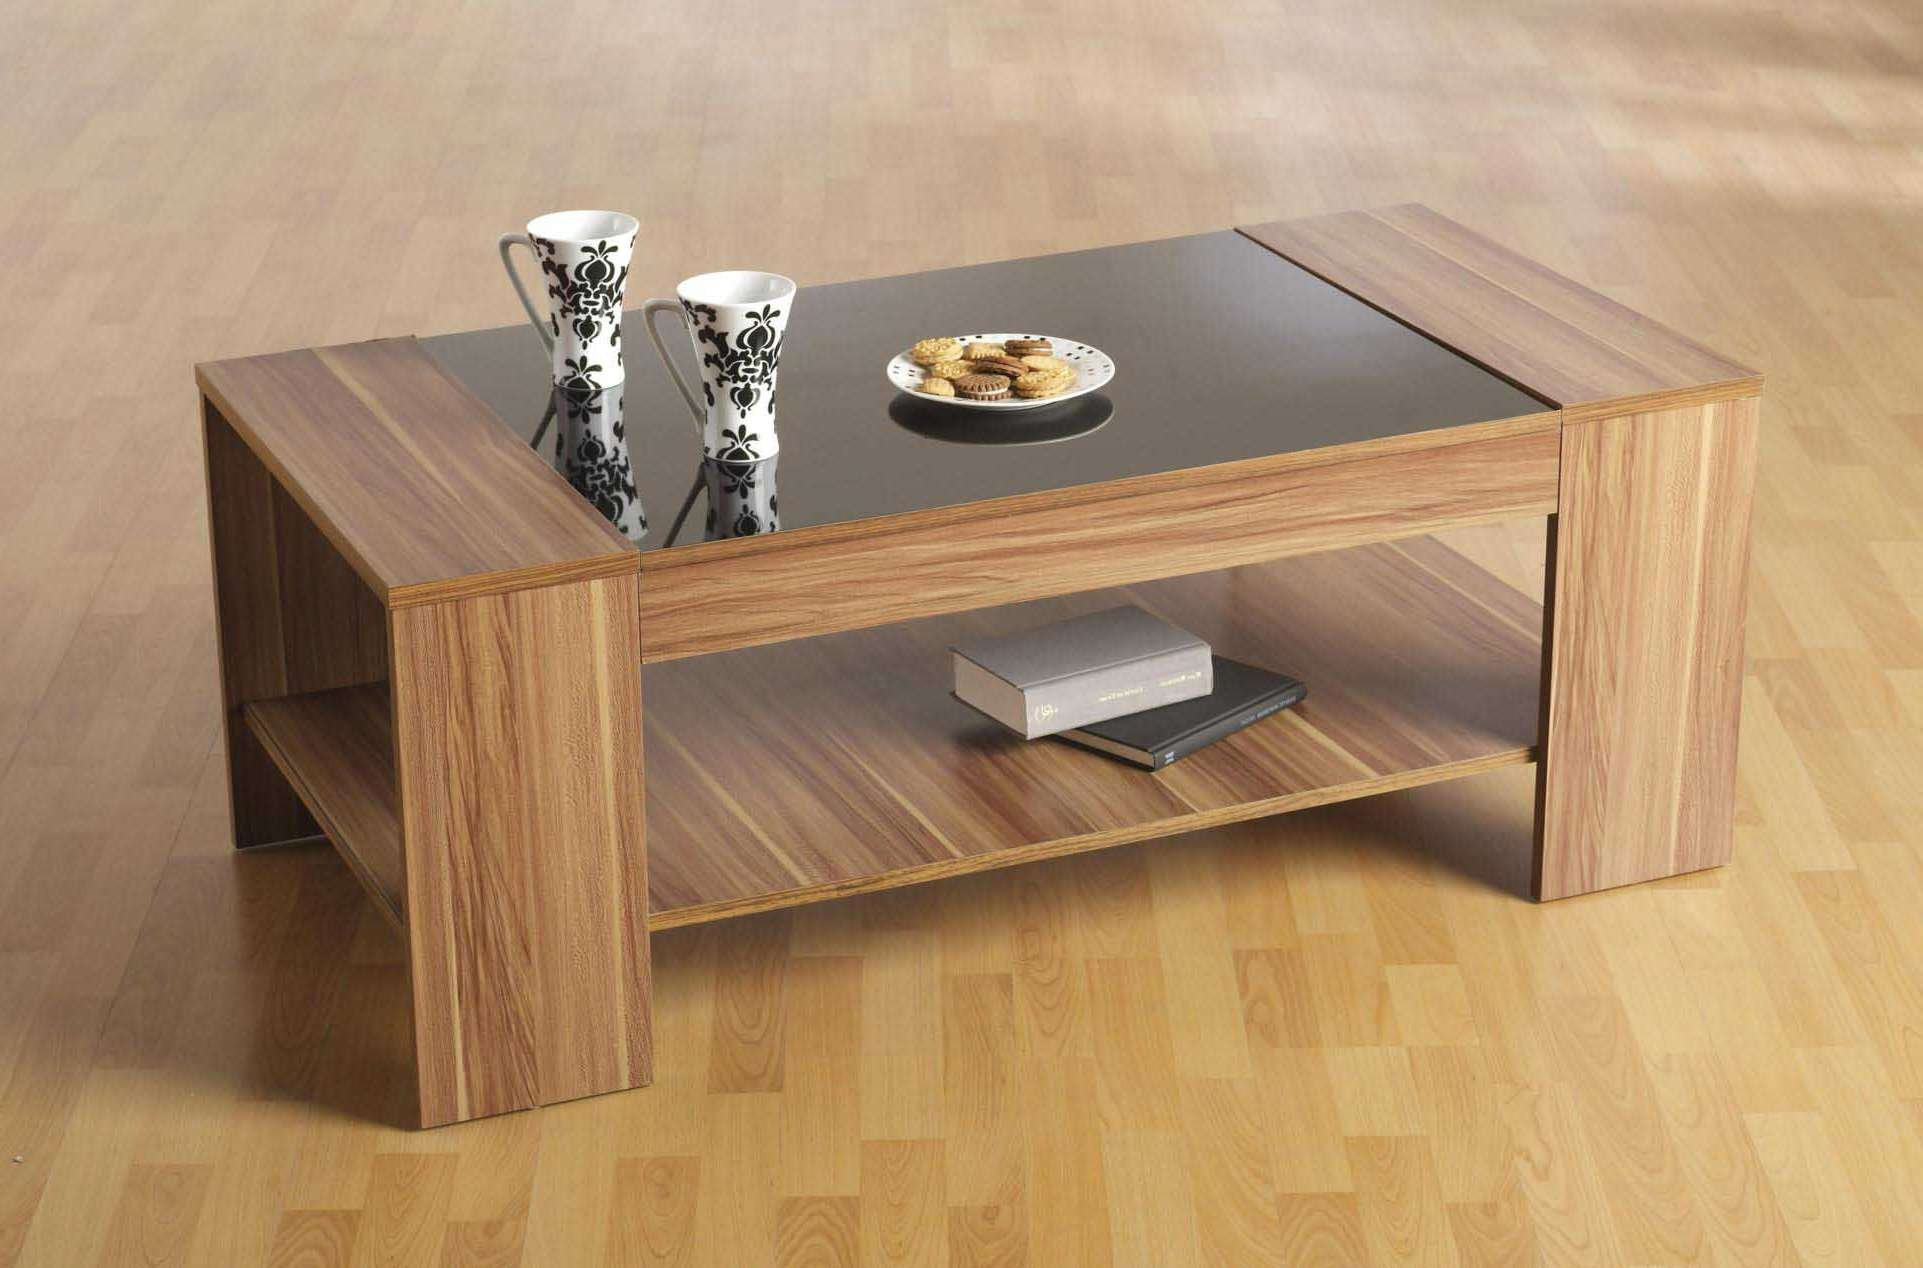 Preferred Glass Oak Coffee Tables Regarding Coffee Tables Ideas: Wood Coffee Table With Glass Top Uk Oak Glass (View 18 of 20)